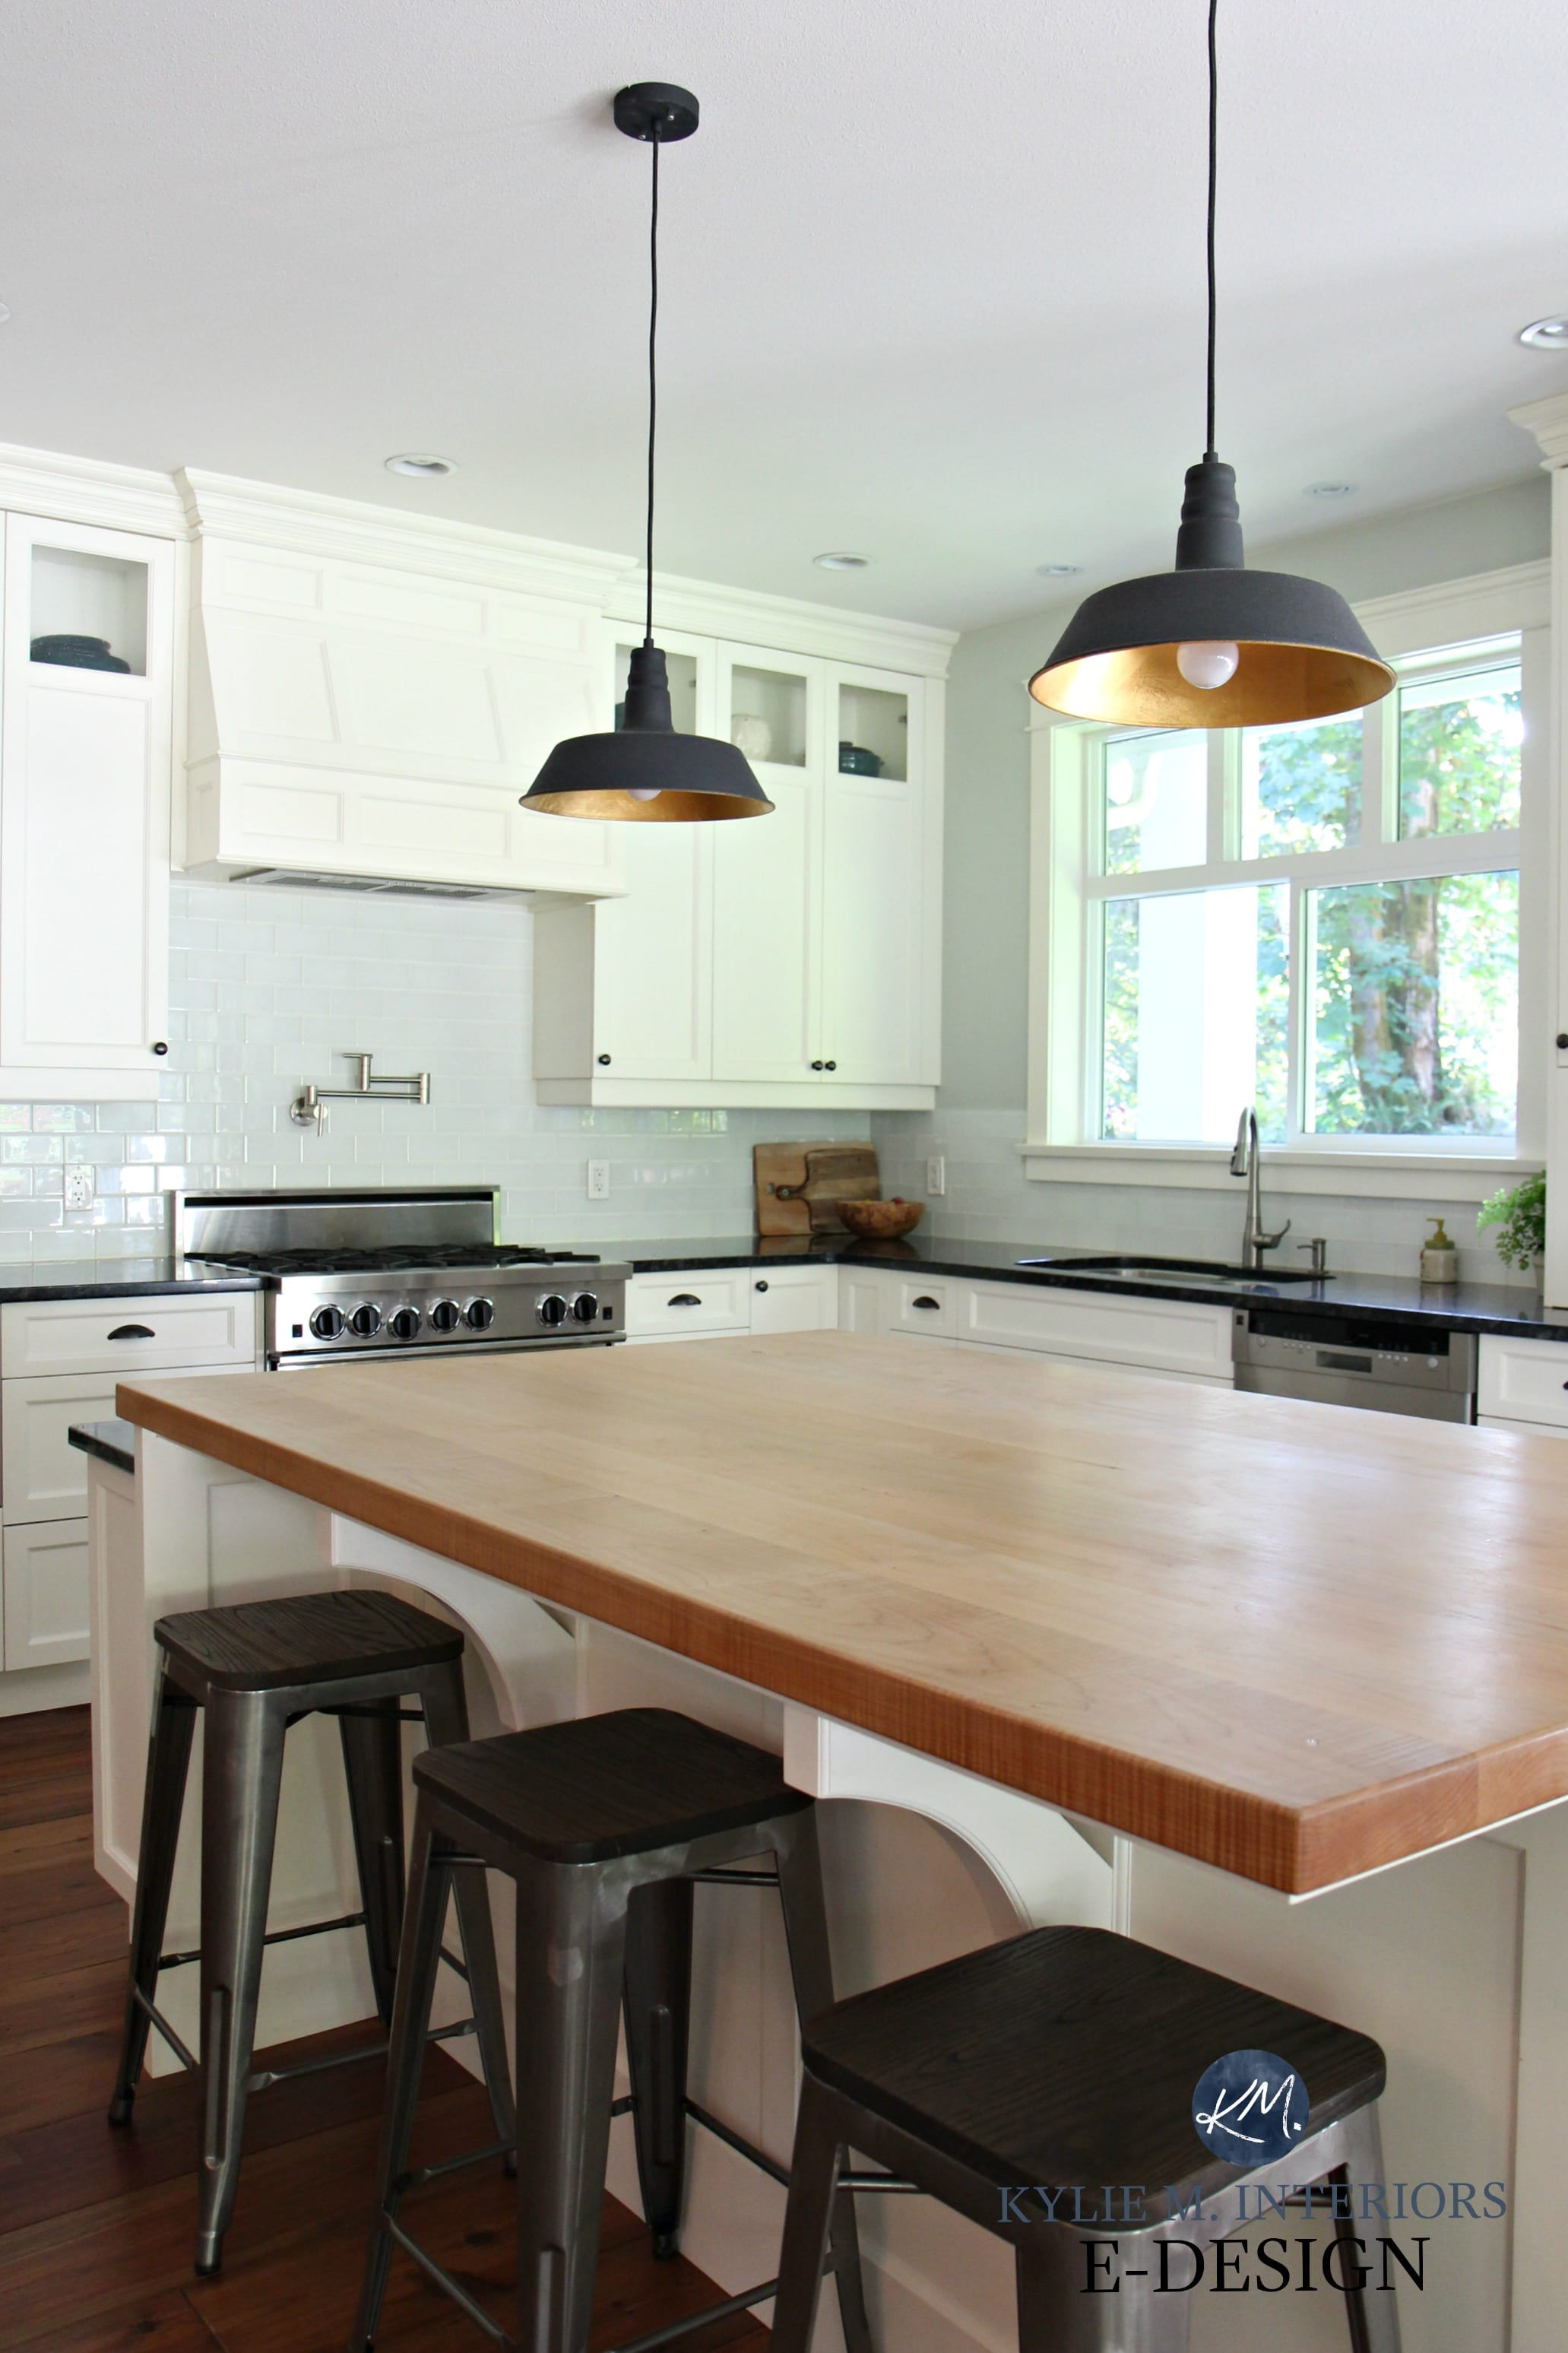 Black Island Kitchen Kylie M Interiors Edesign Butcher Block Island In Farmhouse